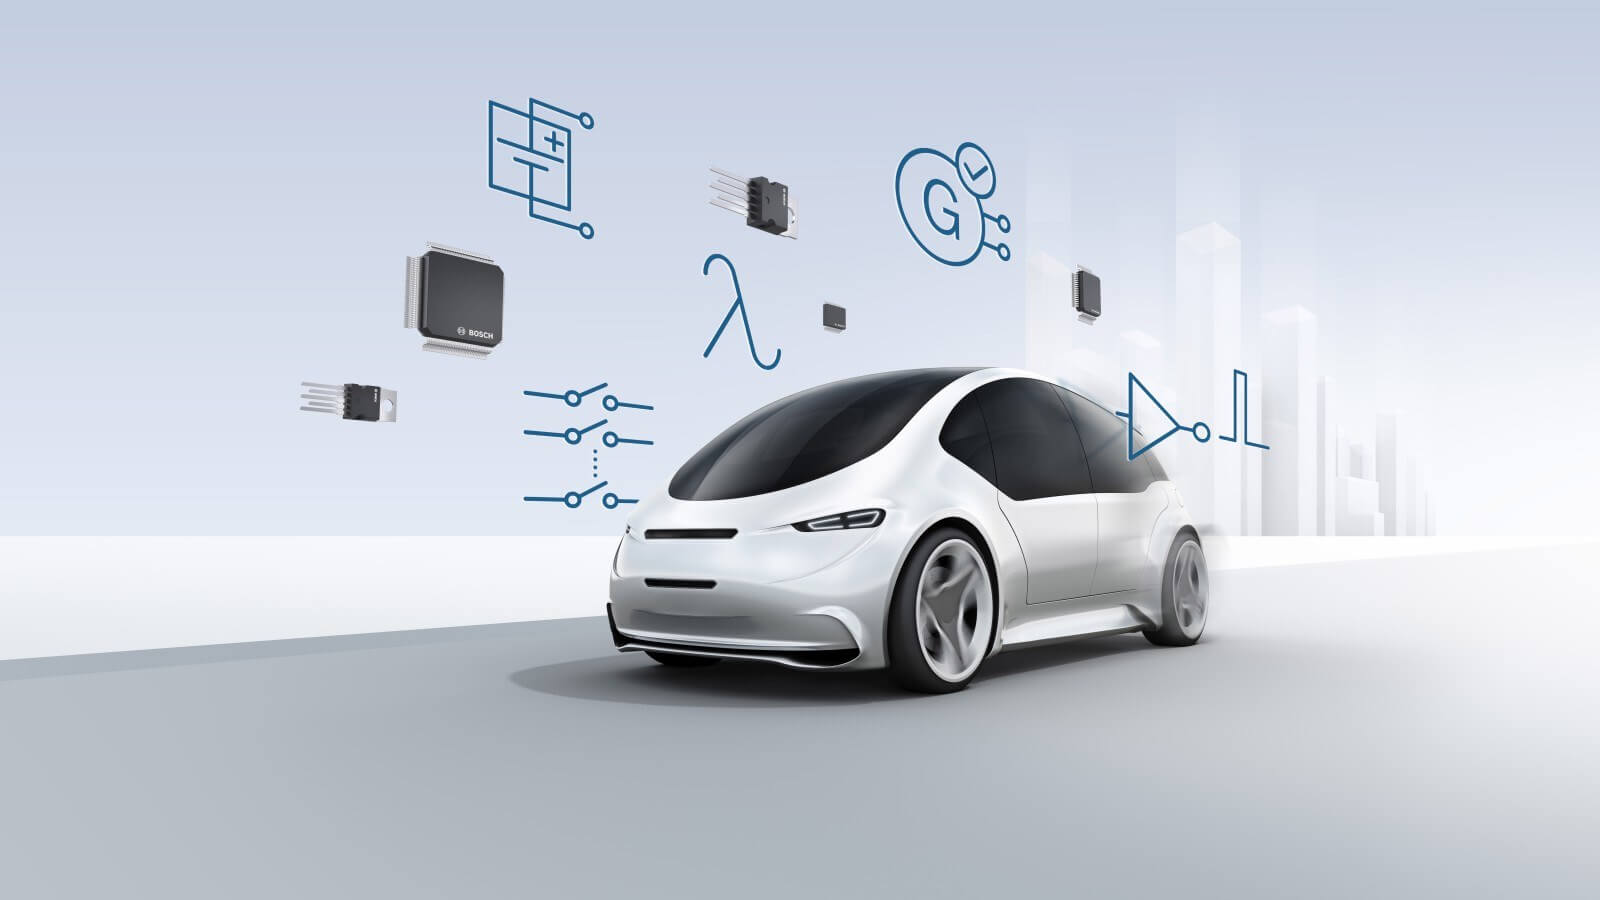 Bosch's microchips can set off mini explosions in EVs mid-crash to prevent electrical leaks and fires